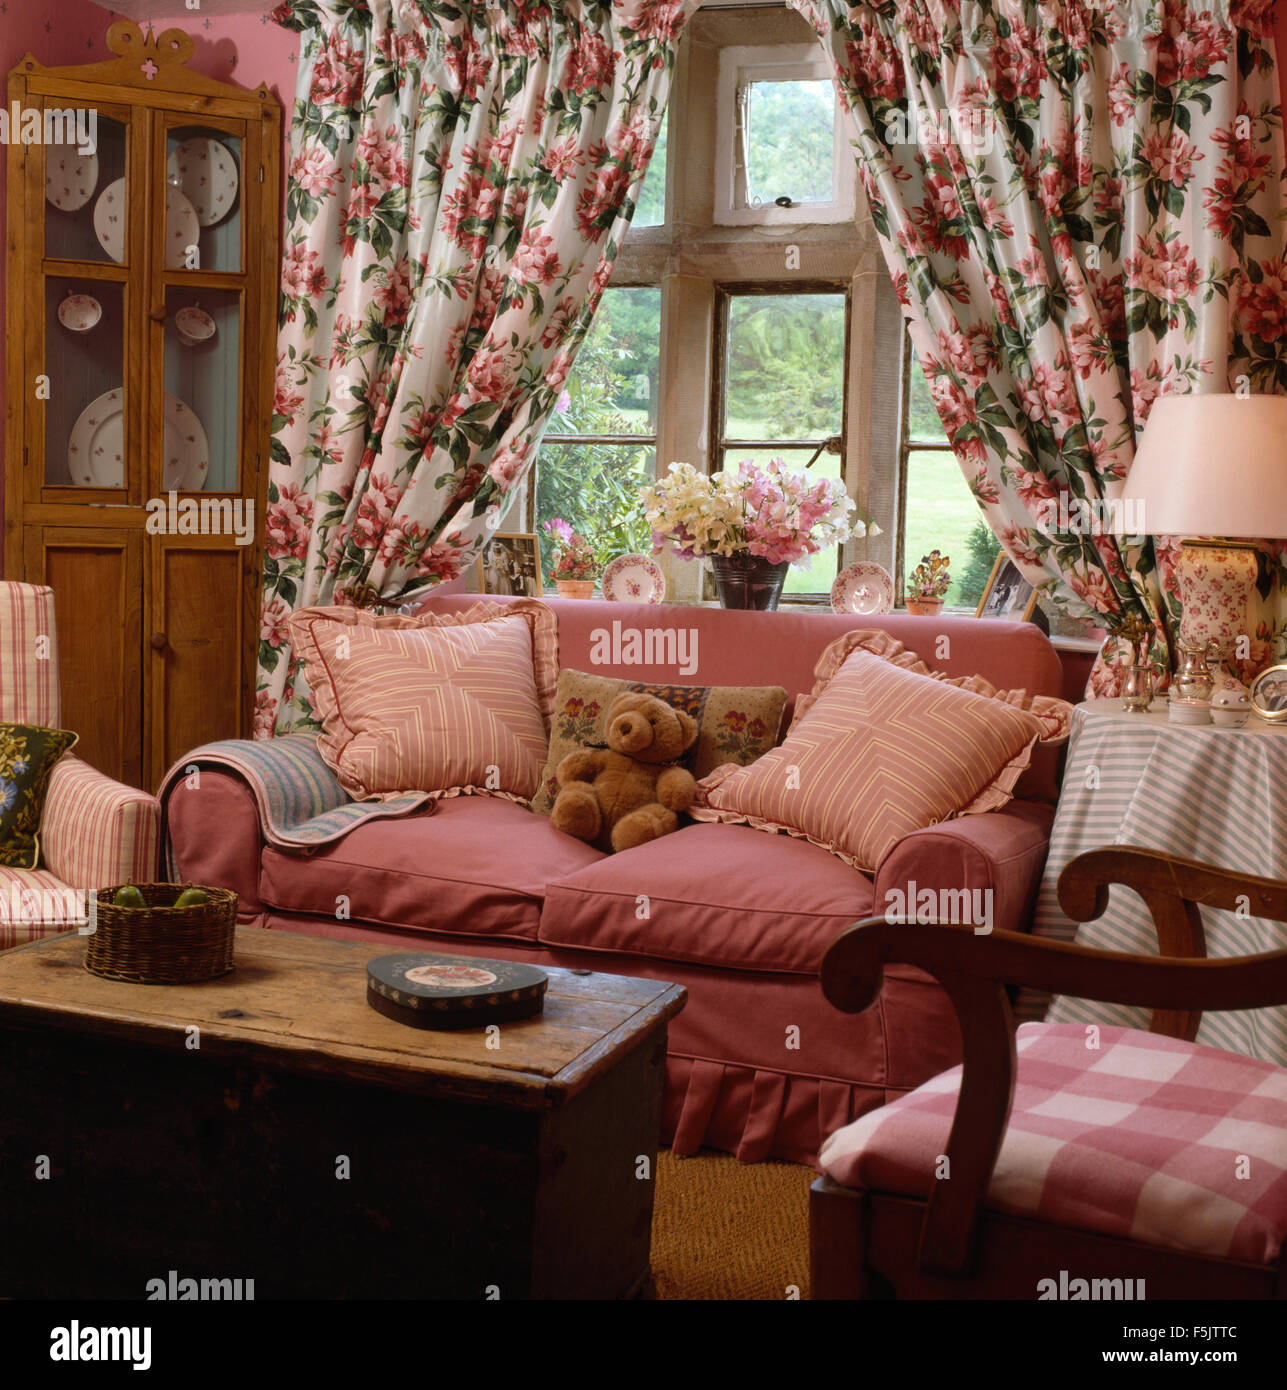 Floral Curtains On Window Behind A Pink Sofa In Country Living Room With An  Old Pine Chest Used As A Coffee Table